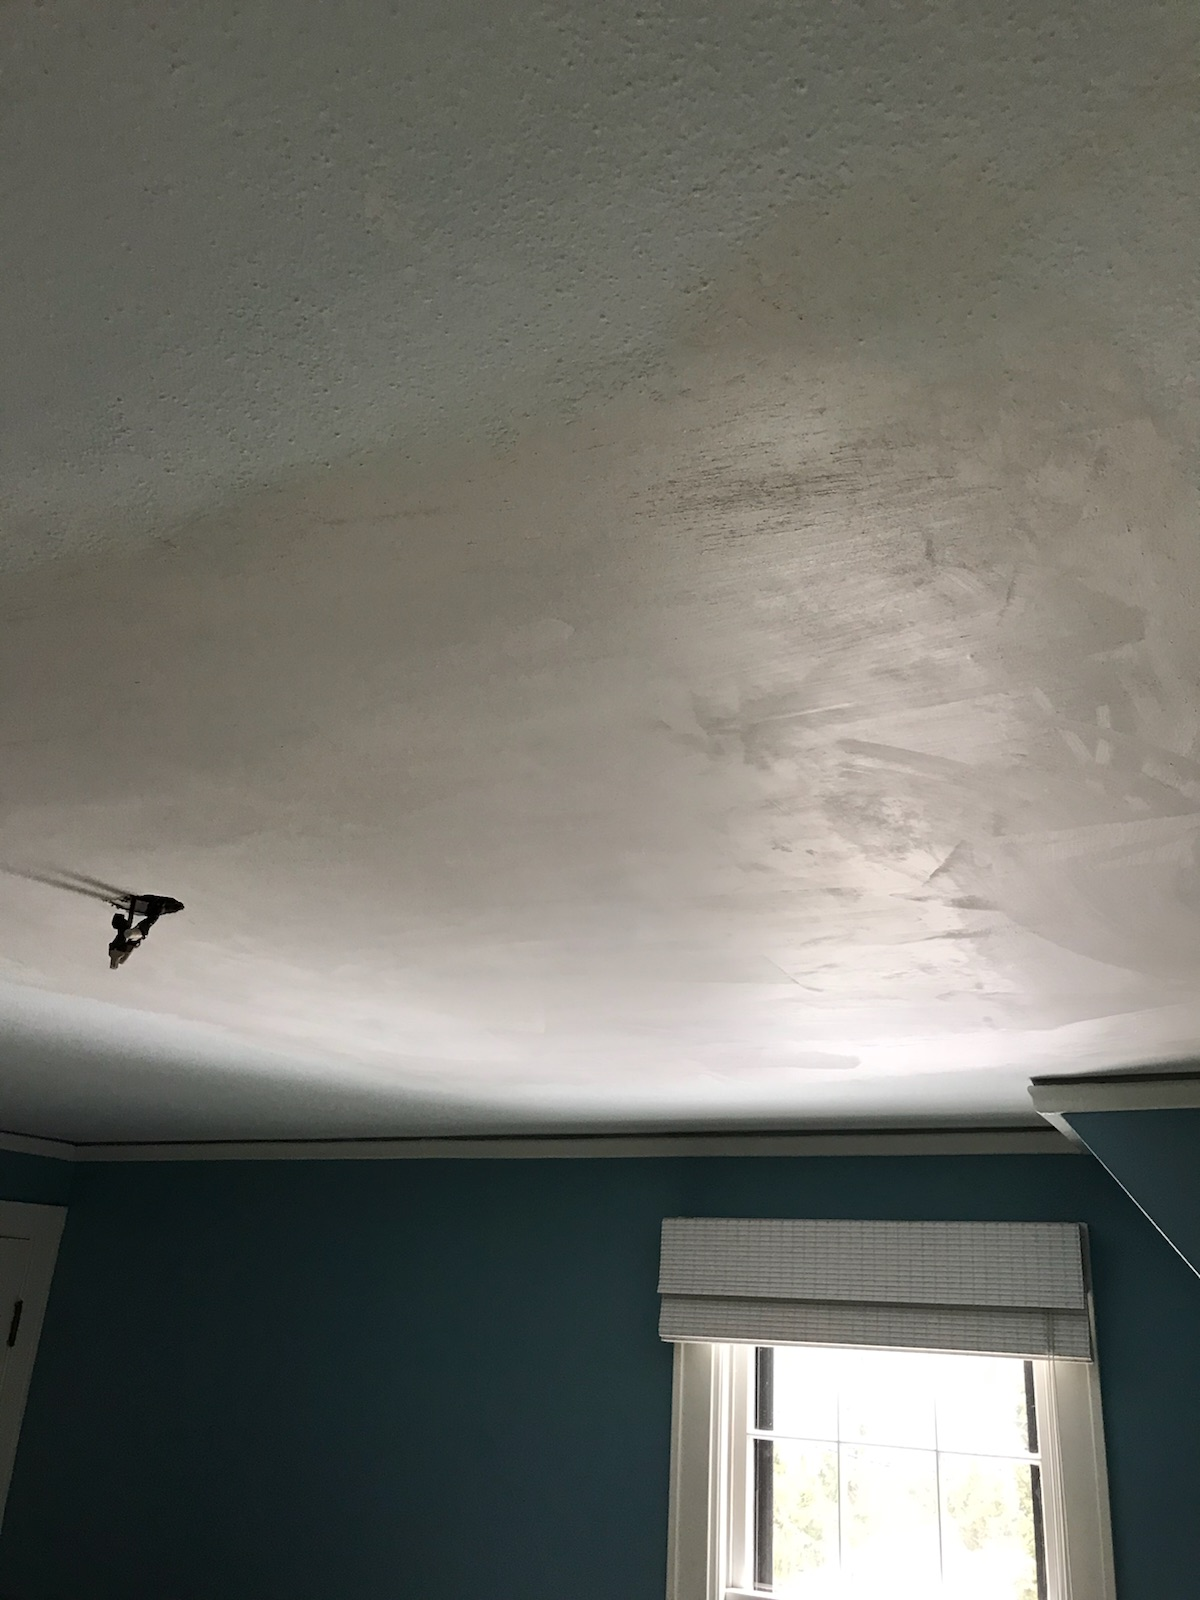 finished ceiling, all patched up